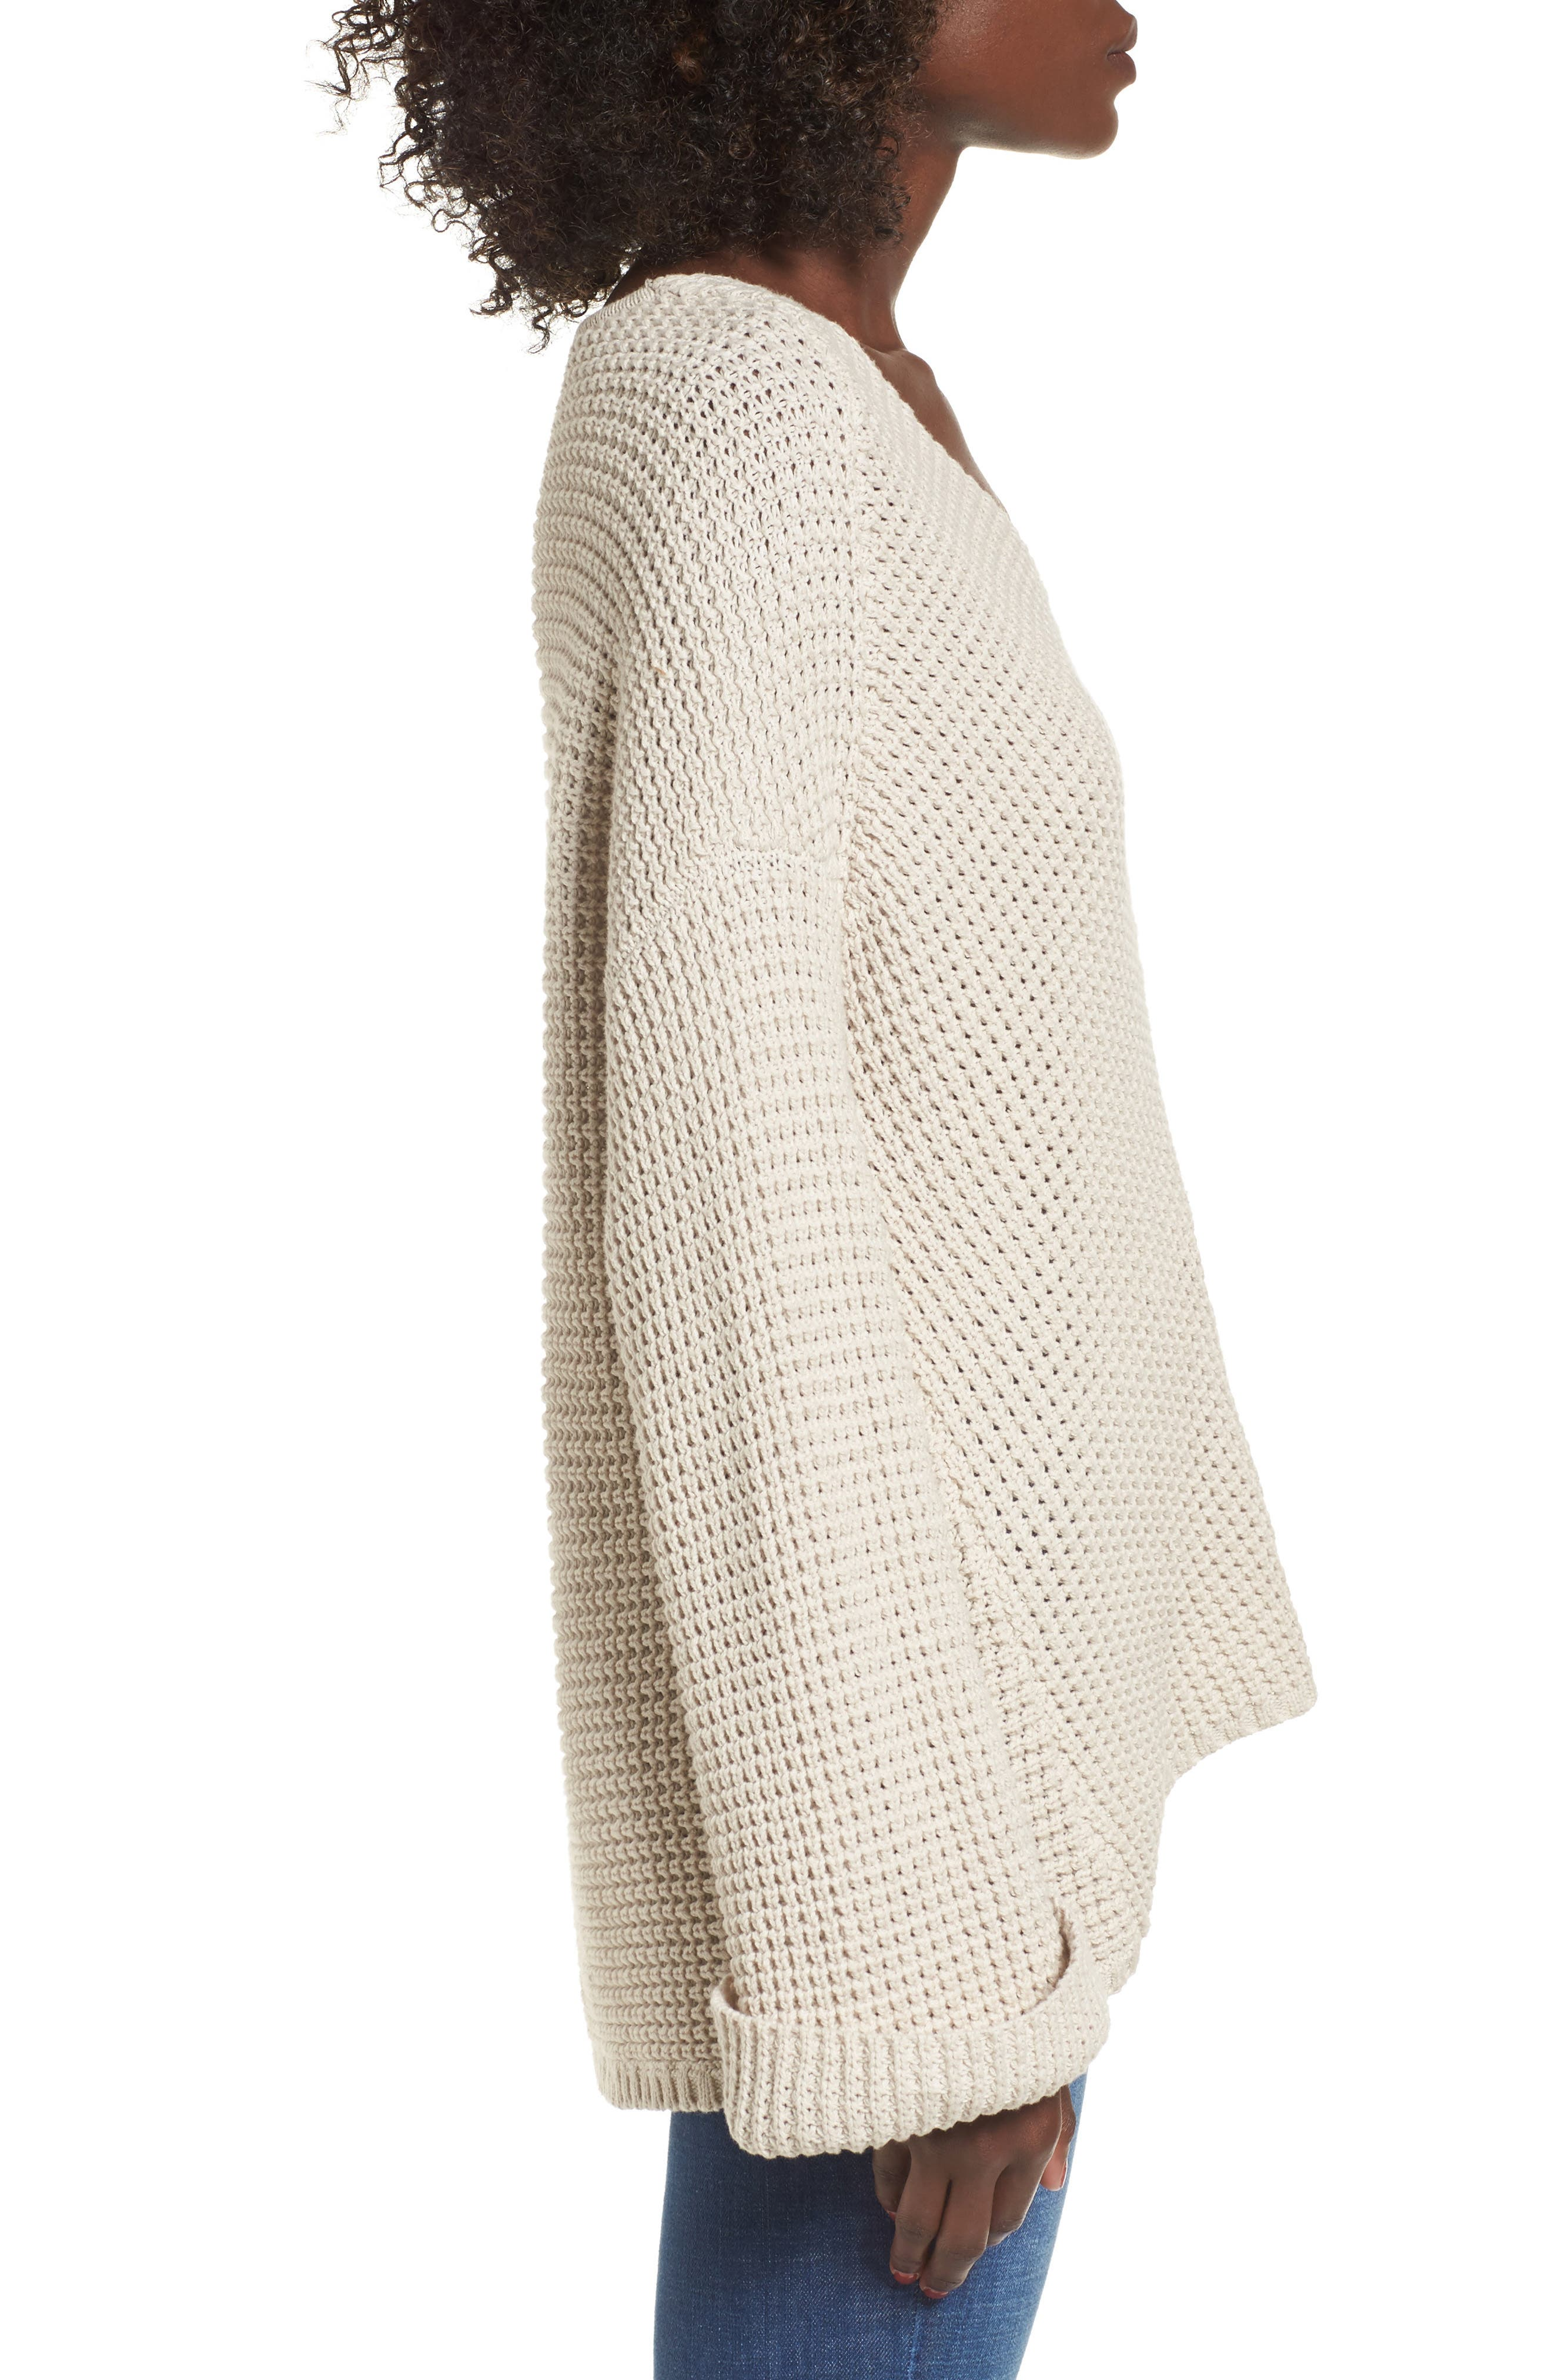 Adelia Bell Sleeve Sweater,                             Alternate thumbnail 3, color,                             Creme